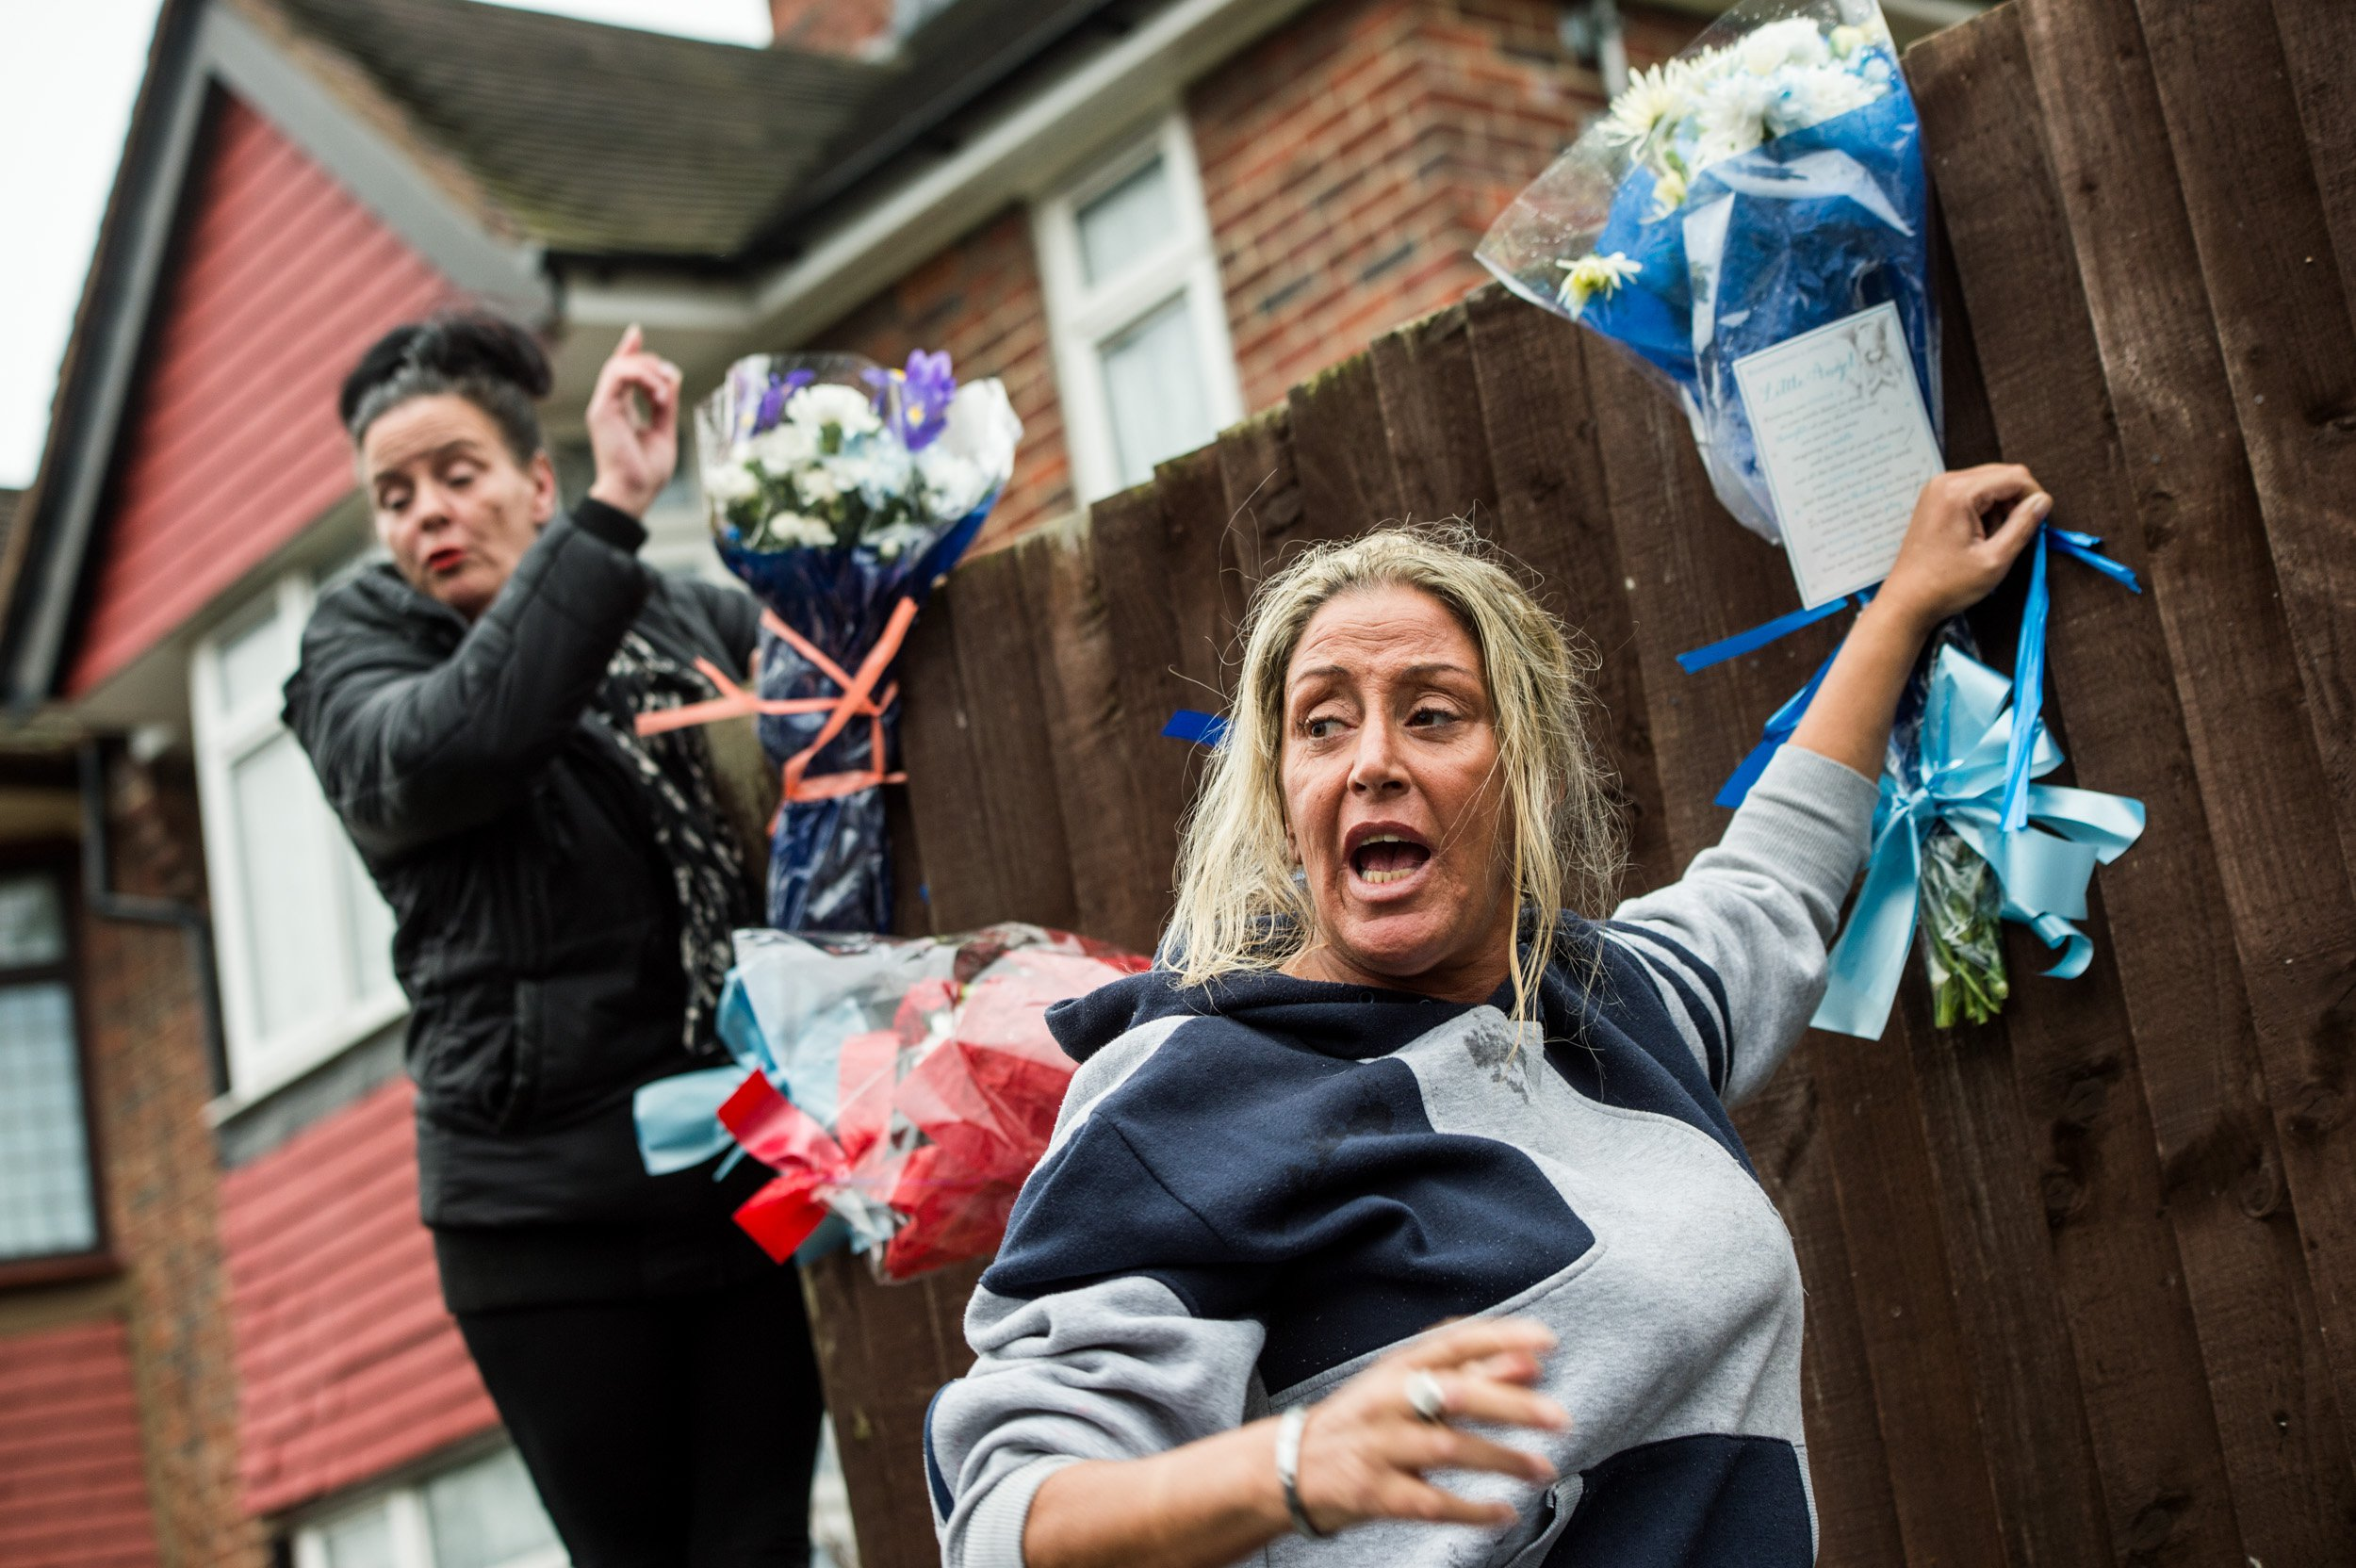 LONDON, UNITED KINGDOM - APRIL 10: Two women are pictured bringing flowers to the makeshift shrine to Vincent opposite Mr Osborn-Brooks' home on April 10, 2018 in London, England. Pensioner Richard Osborn-Brooks has been released without charge after he confronted a pair of burglars at his home in South East London, killing one of them. PHOTOGRAPH BY Brais G. Rouco / Barcroft Images